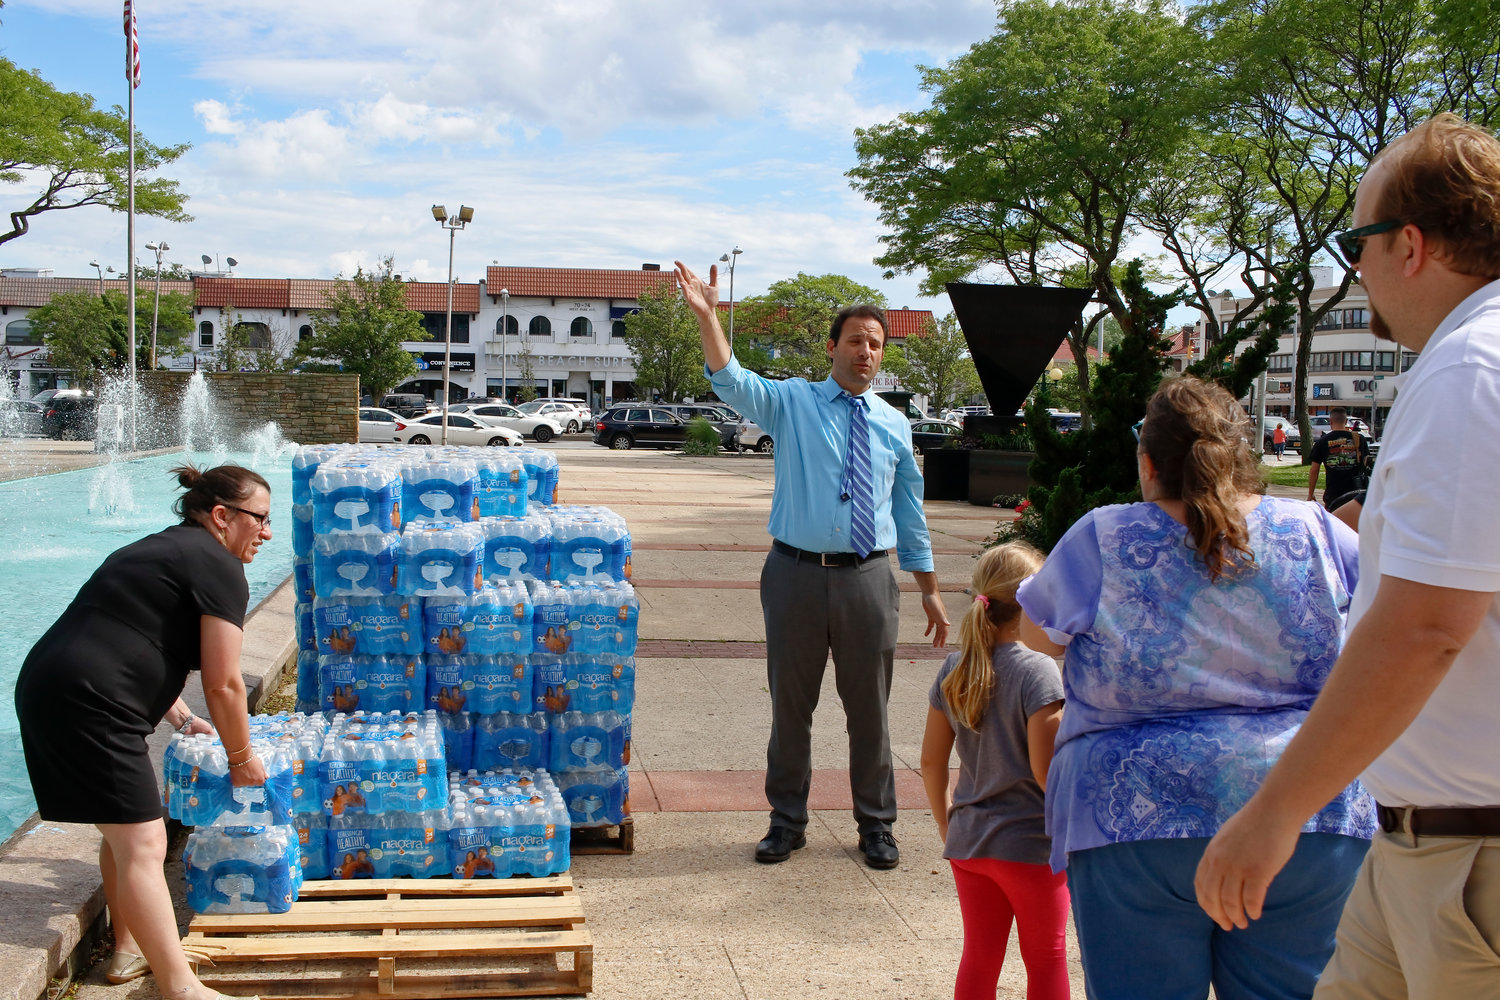 City Council Vice President Chumi Diamond, left, and Council President Anthony Eramo, center, distributed bottled water at Kennedy Plaza on Friday.